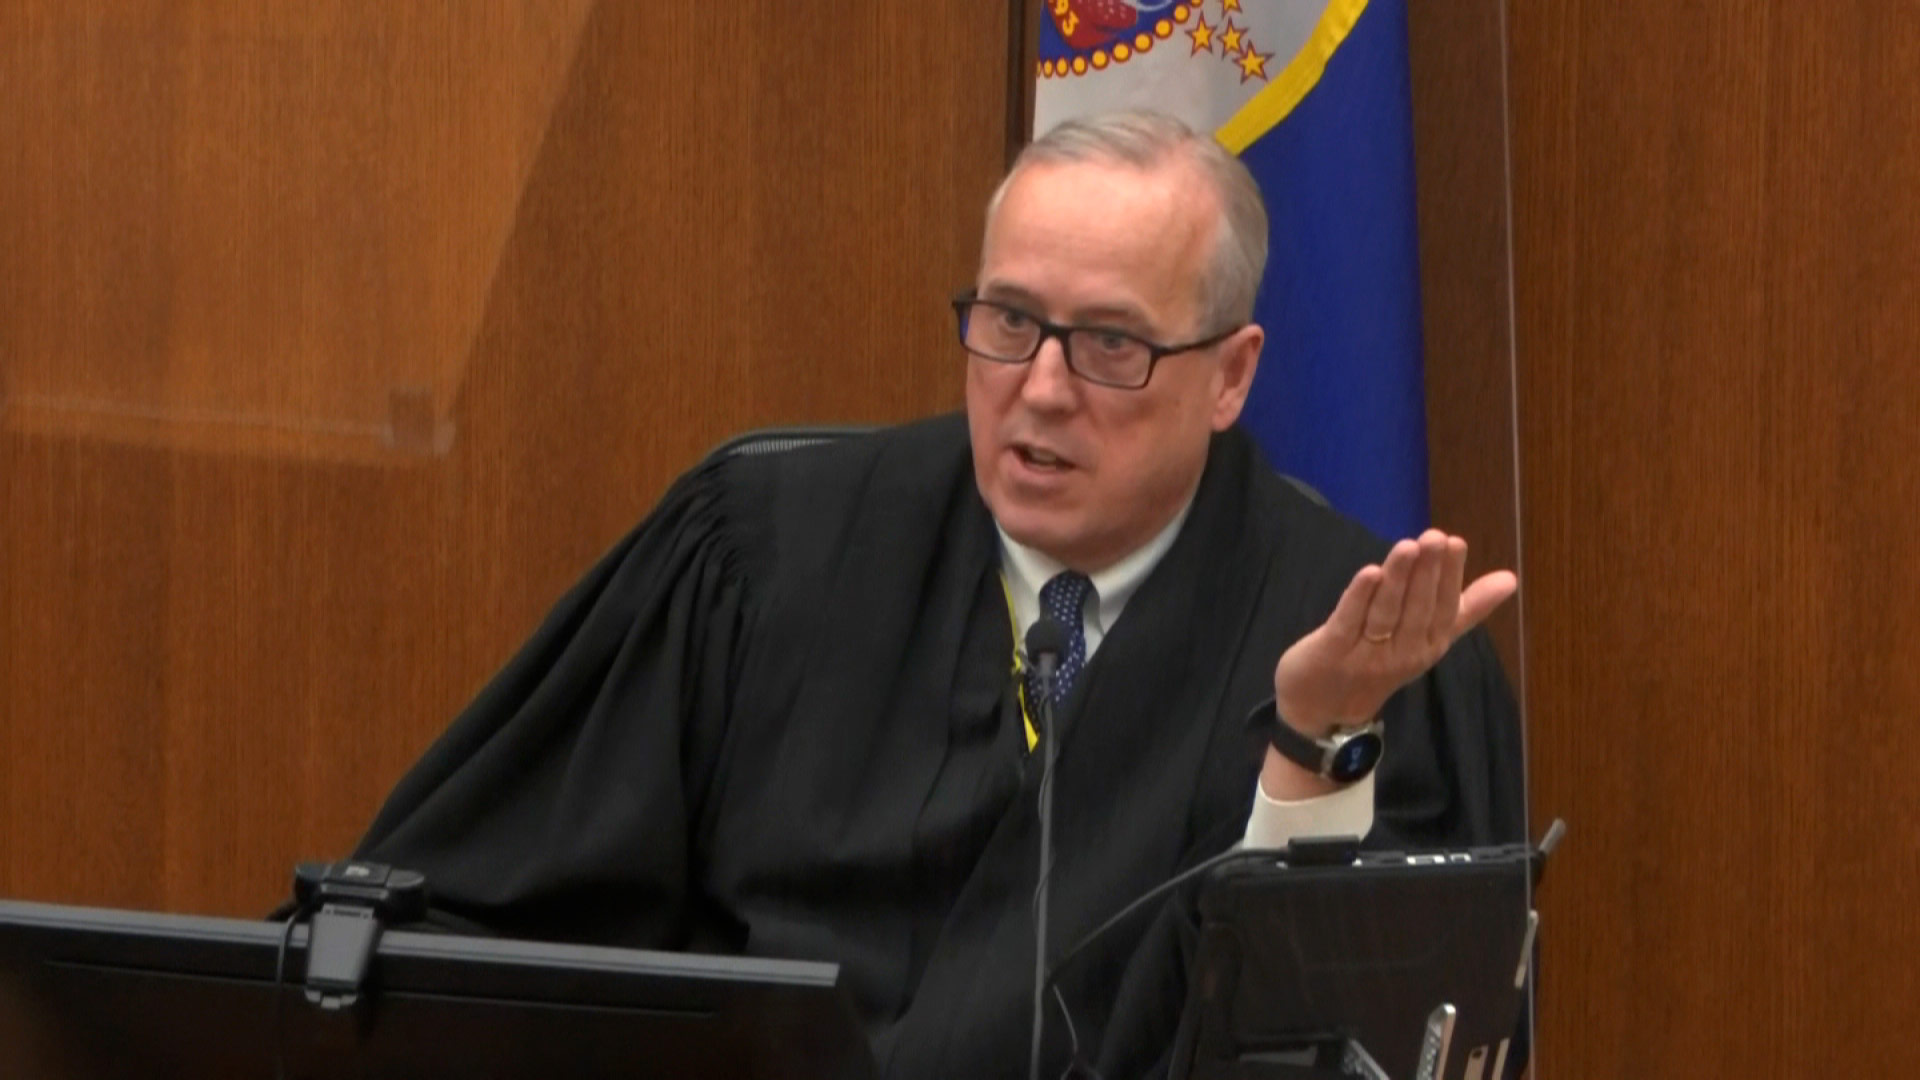 Judge Peter Cahill speaks during court proceedings on Monday, April 12.